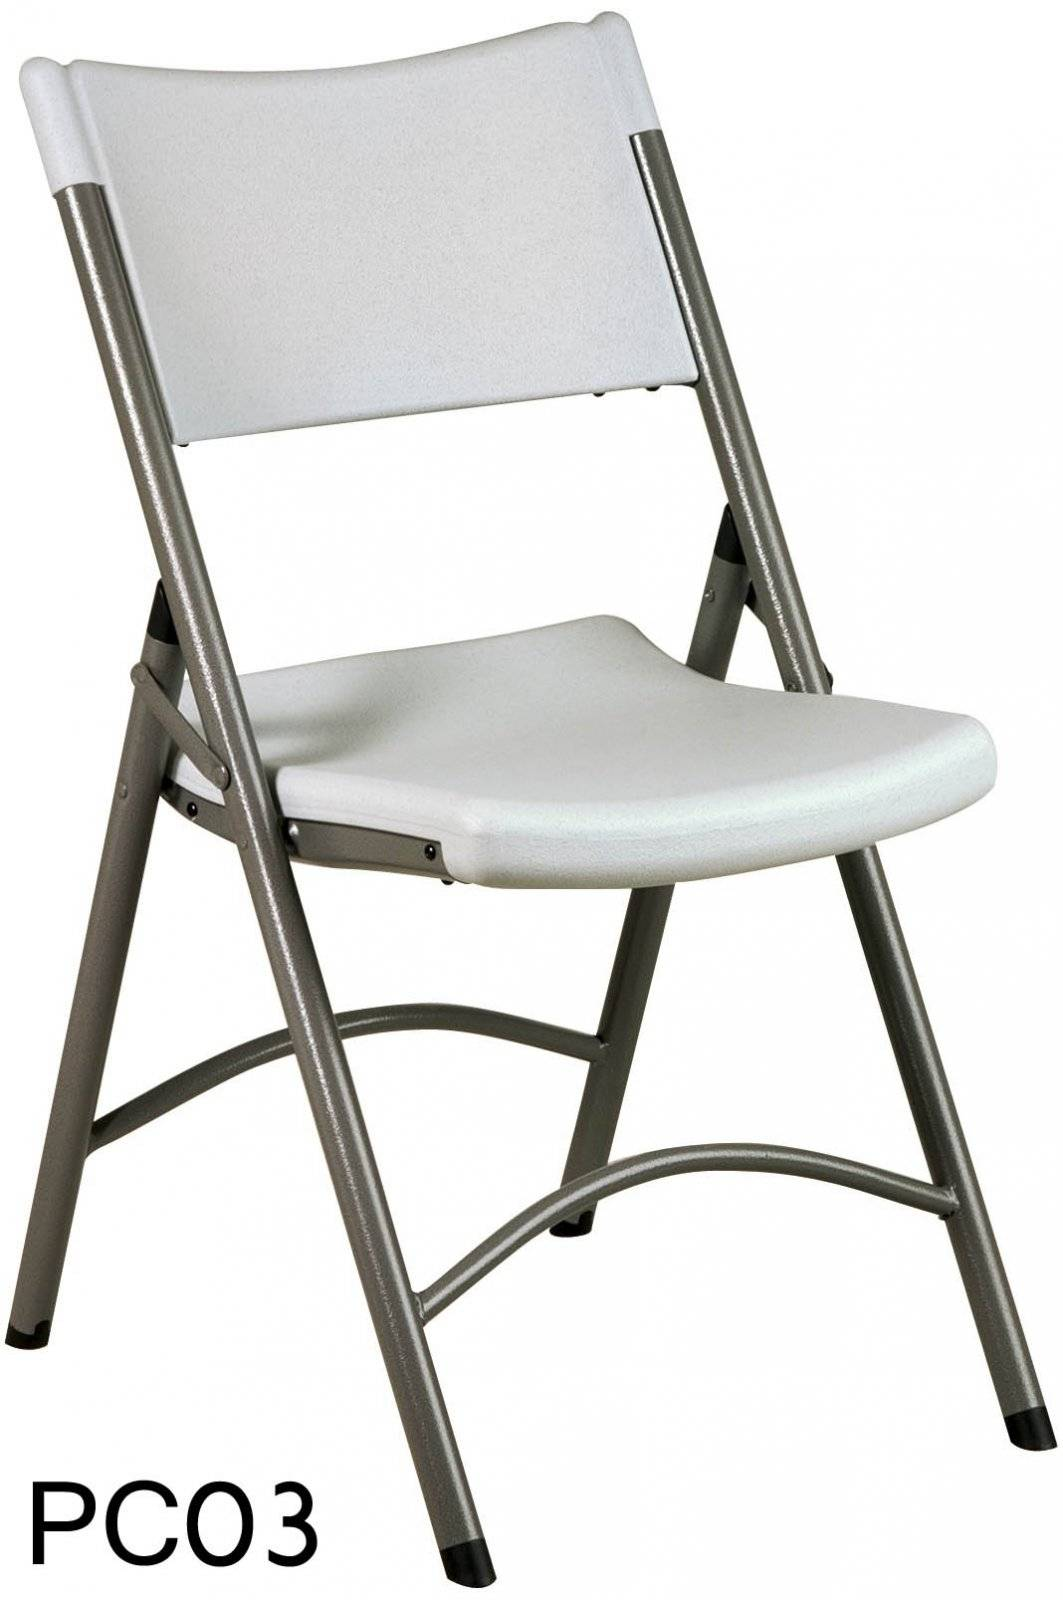 chair stand test measure covers hire auckland office star pc 15f molded folding half bench 6 39 sd